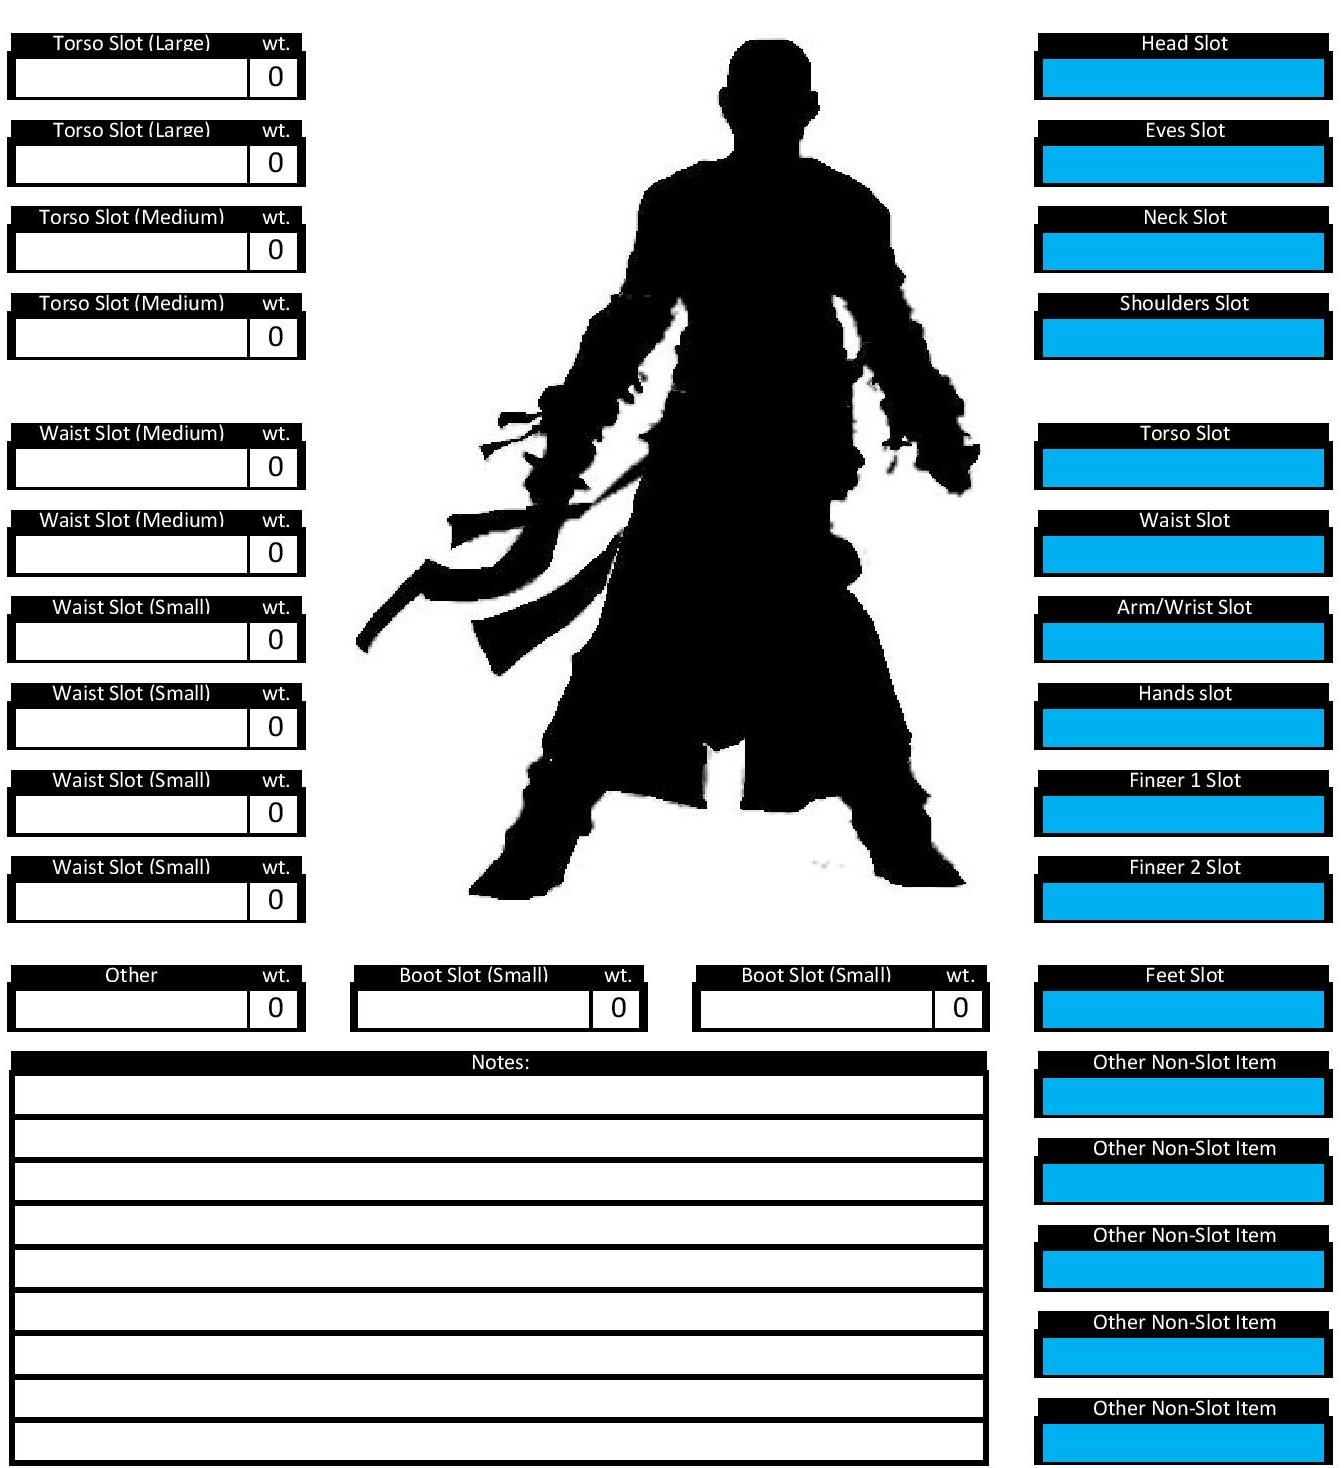 Item slot stand alone sheet beta2 page 001